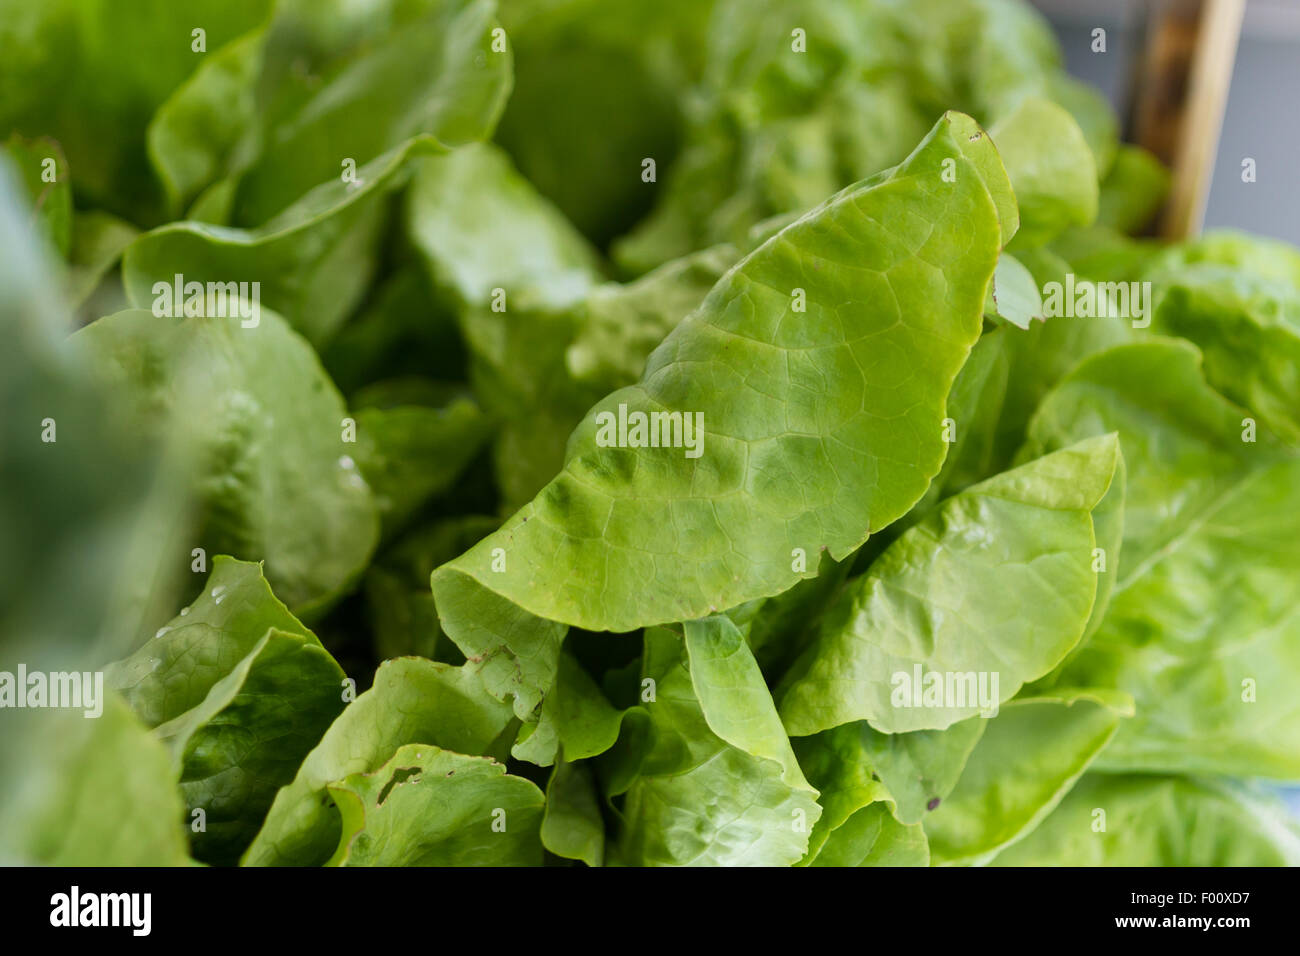 close up of a head of green leaf lettuce at the farmers market - Stock Image